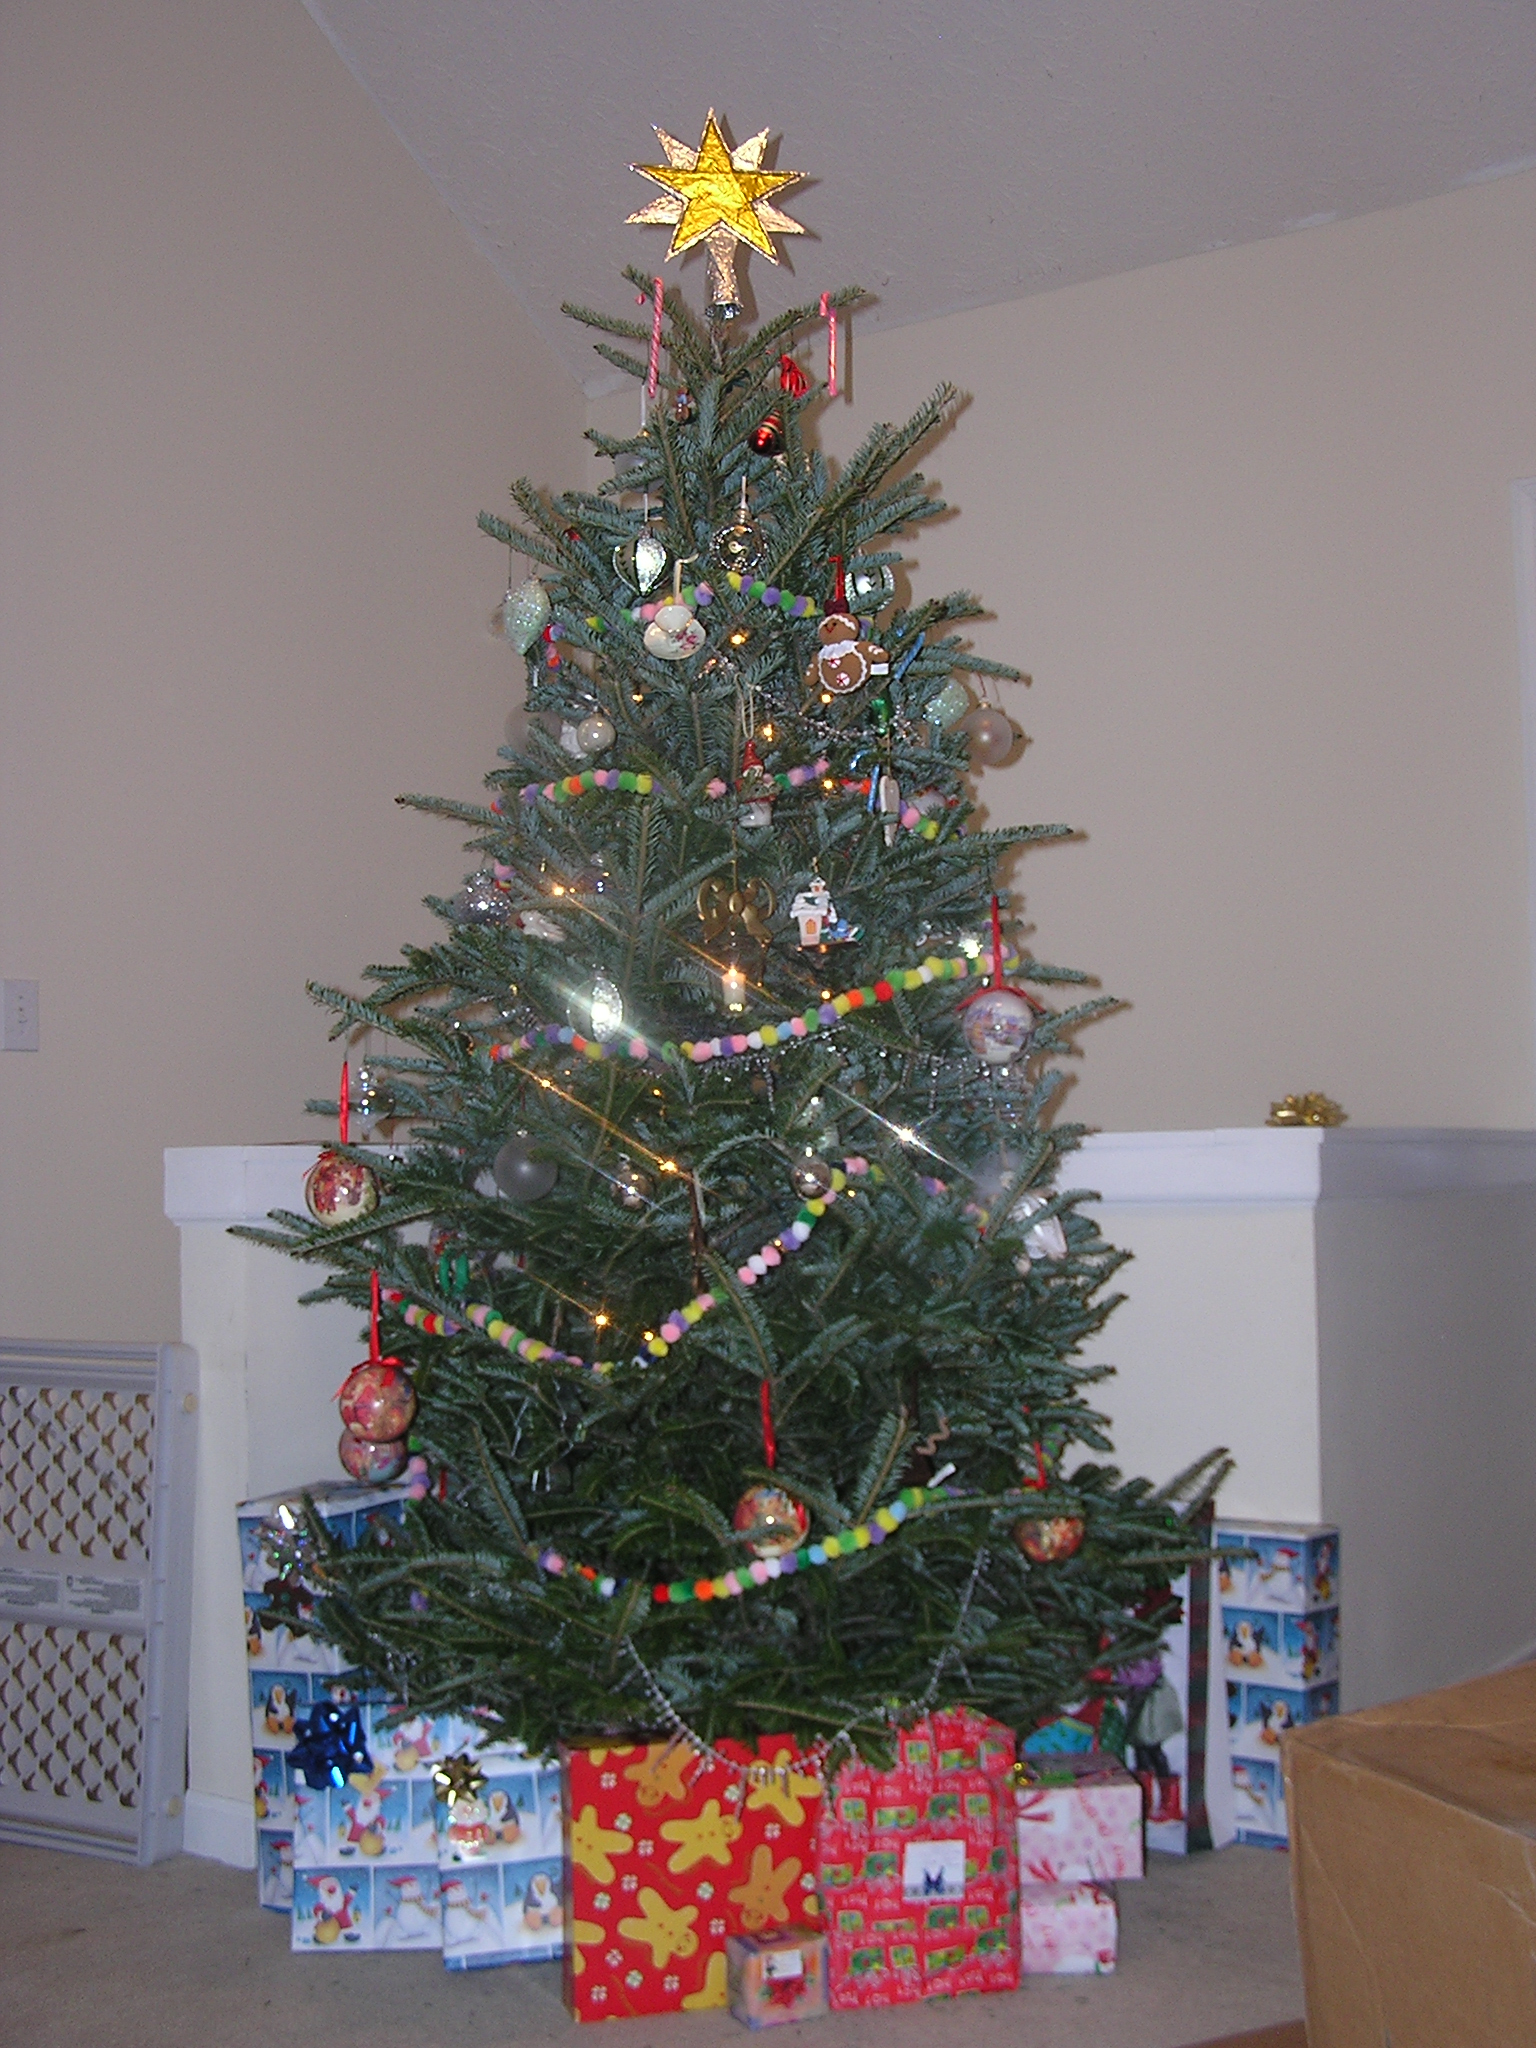 This is our Christmas tree. Notice that there are hardly any ornaments on the bottom half. That is because my 1 1/2 year old had broken 3 of my oldest ornaments when putting the tree up, so once she went to bed all the breakables were put up out of her reach.